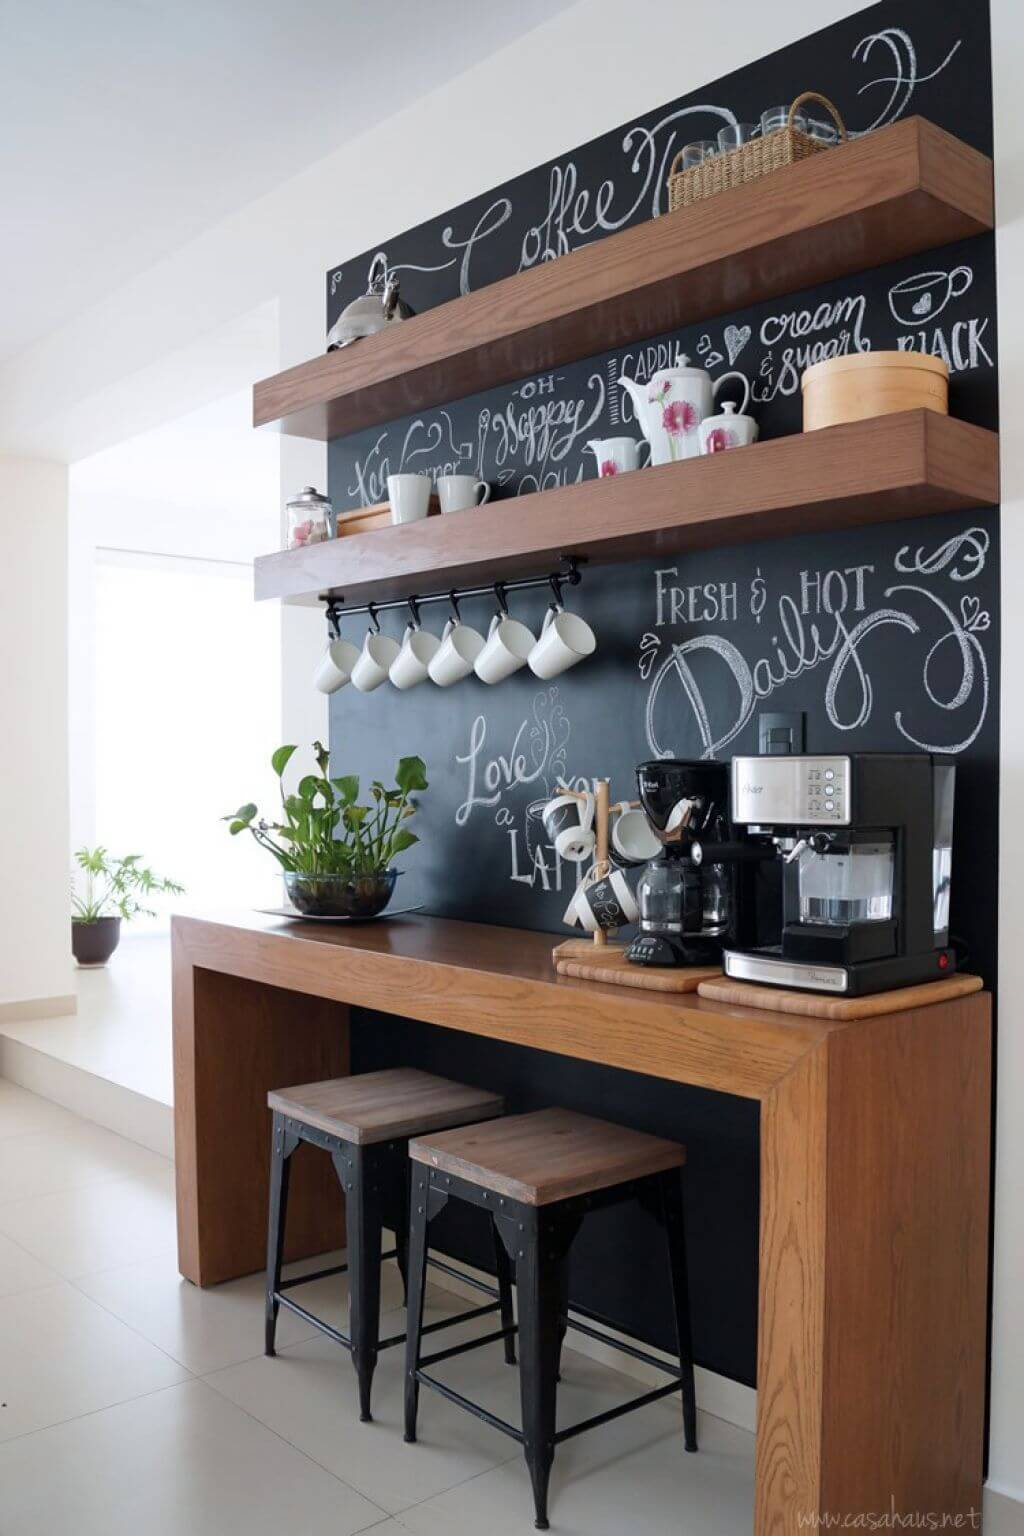 Modern Floating Shelf Storage with Chalkboard Backdrop